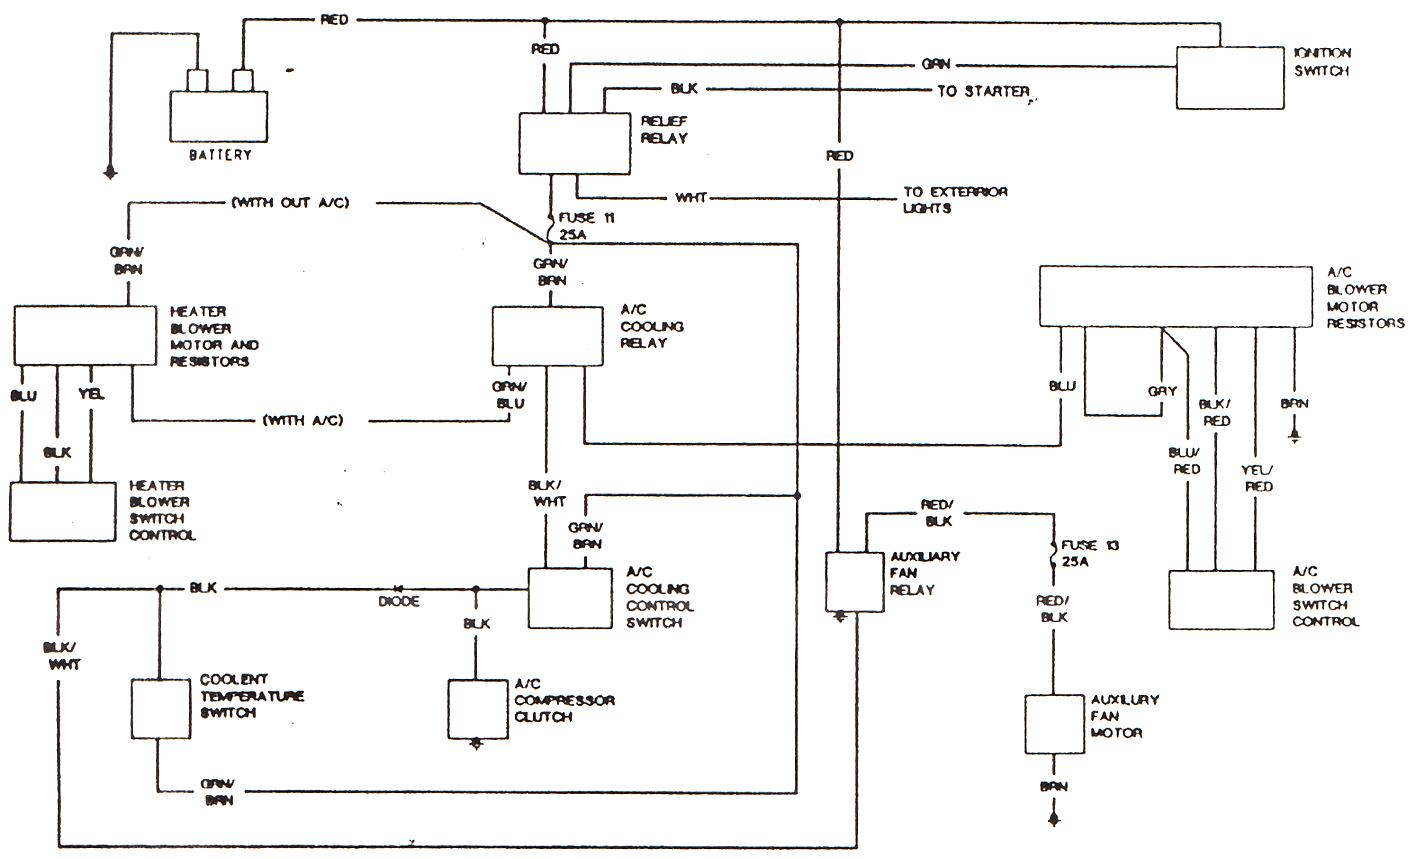 Ac Motor Diagrams2 car ac wiring diagram pdf ac motor diagram \u2022 free wiring diagrams bmw e46 320d wiring diagram pdf at fashall.co